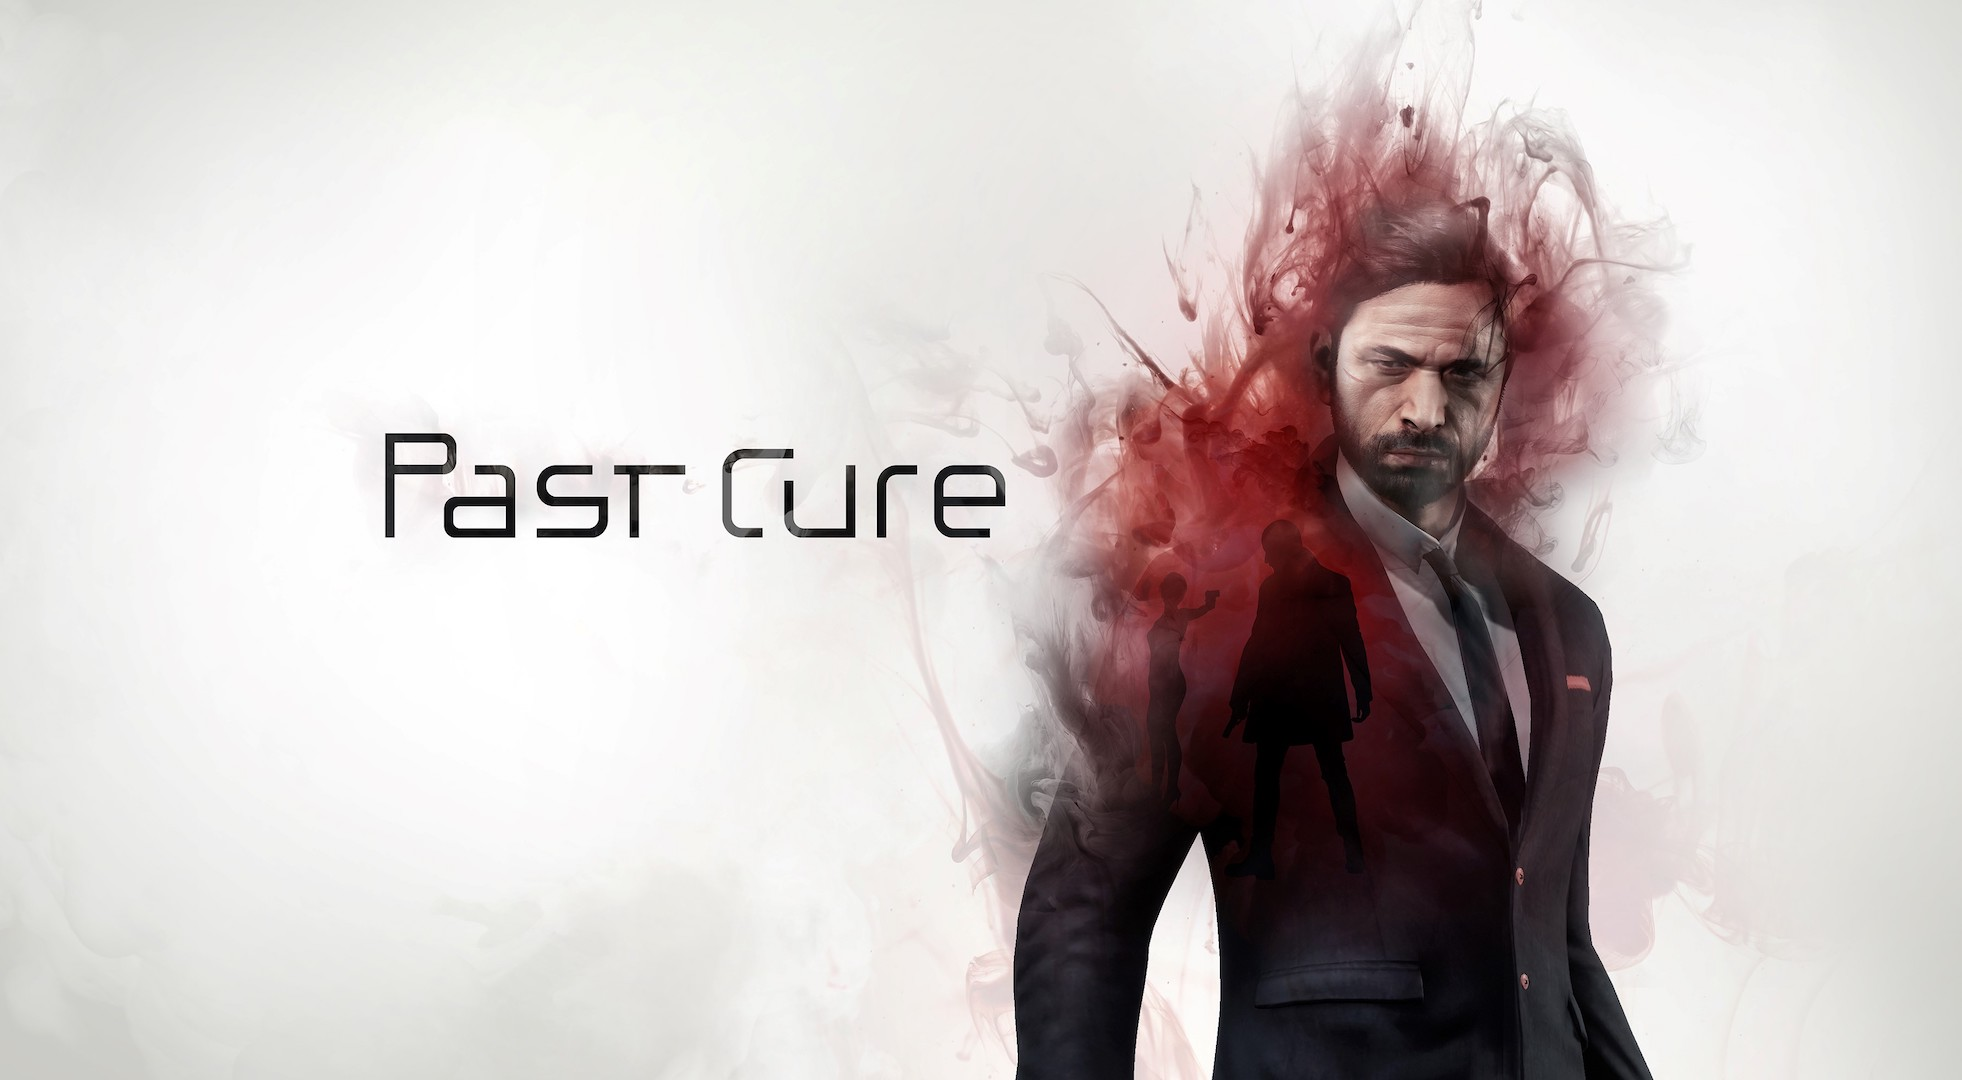 Past Cure – Xbox One | Review